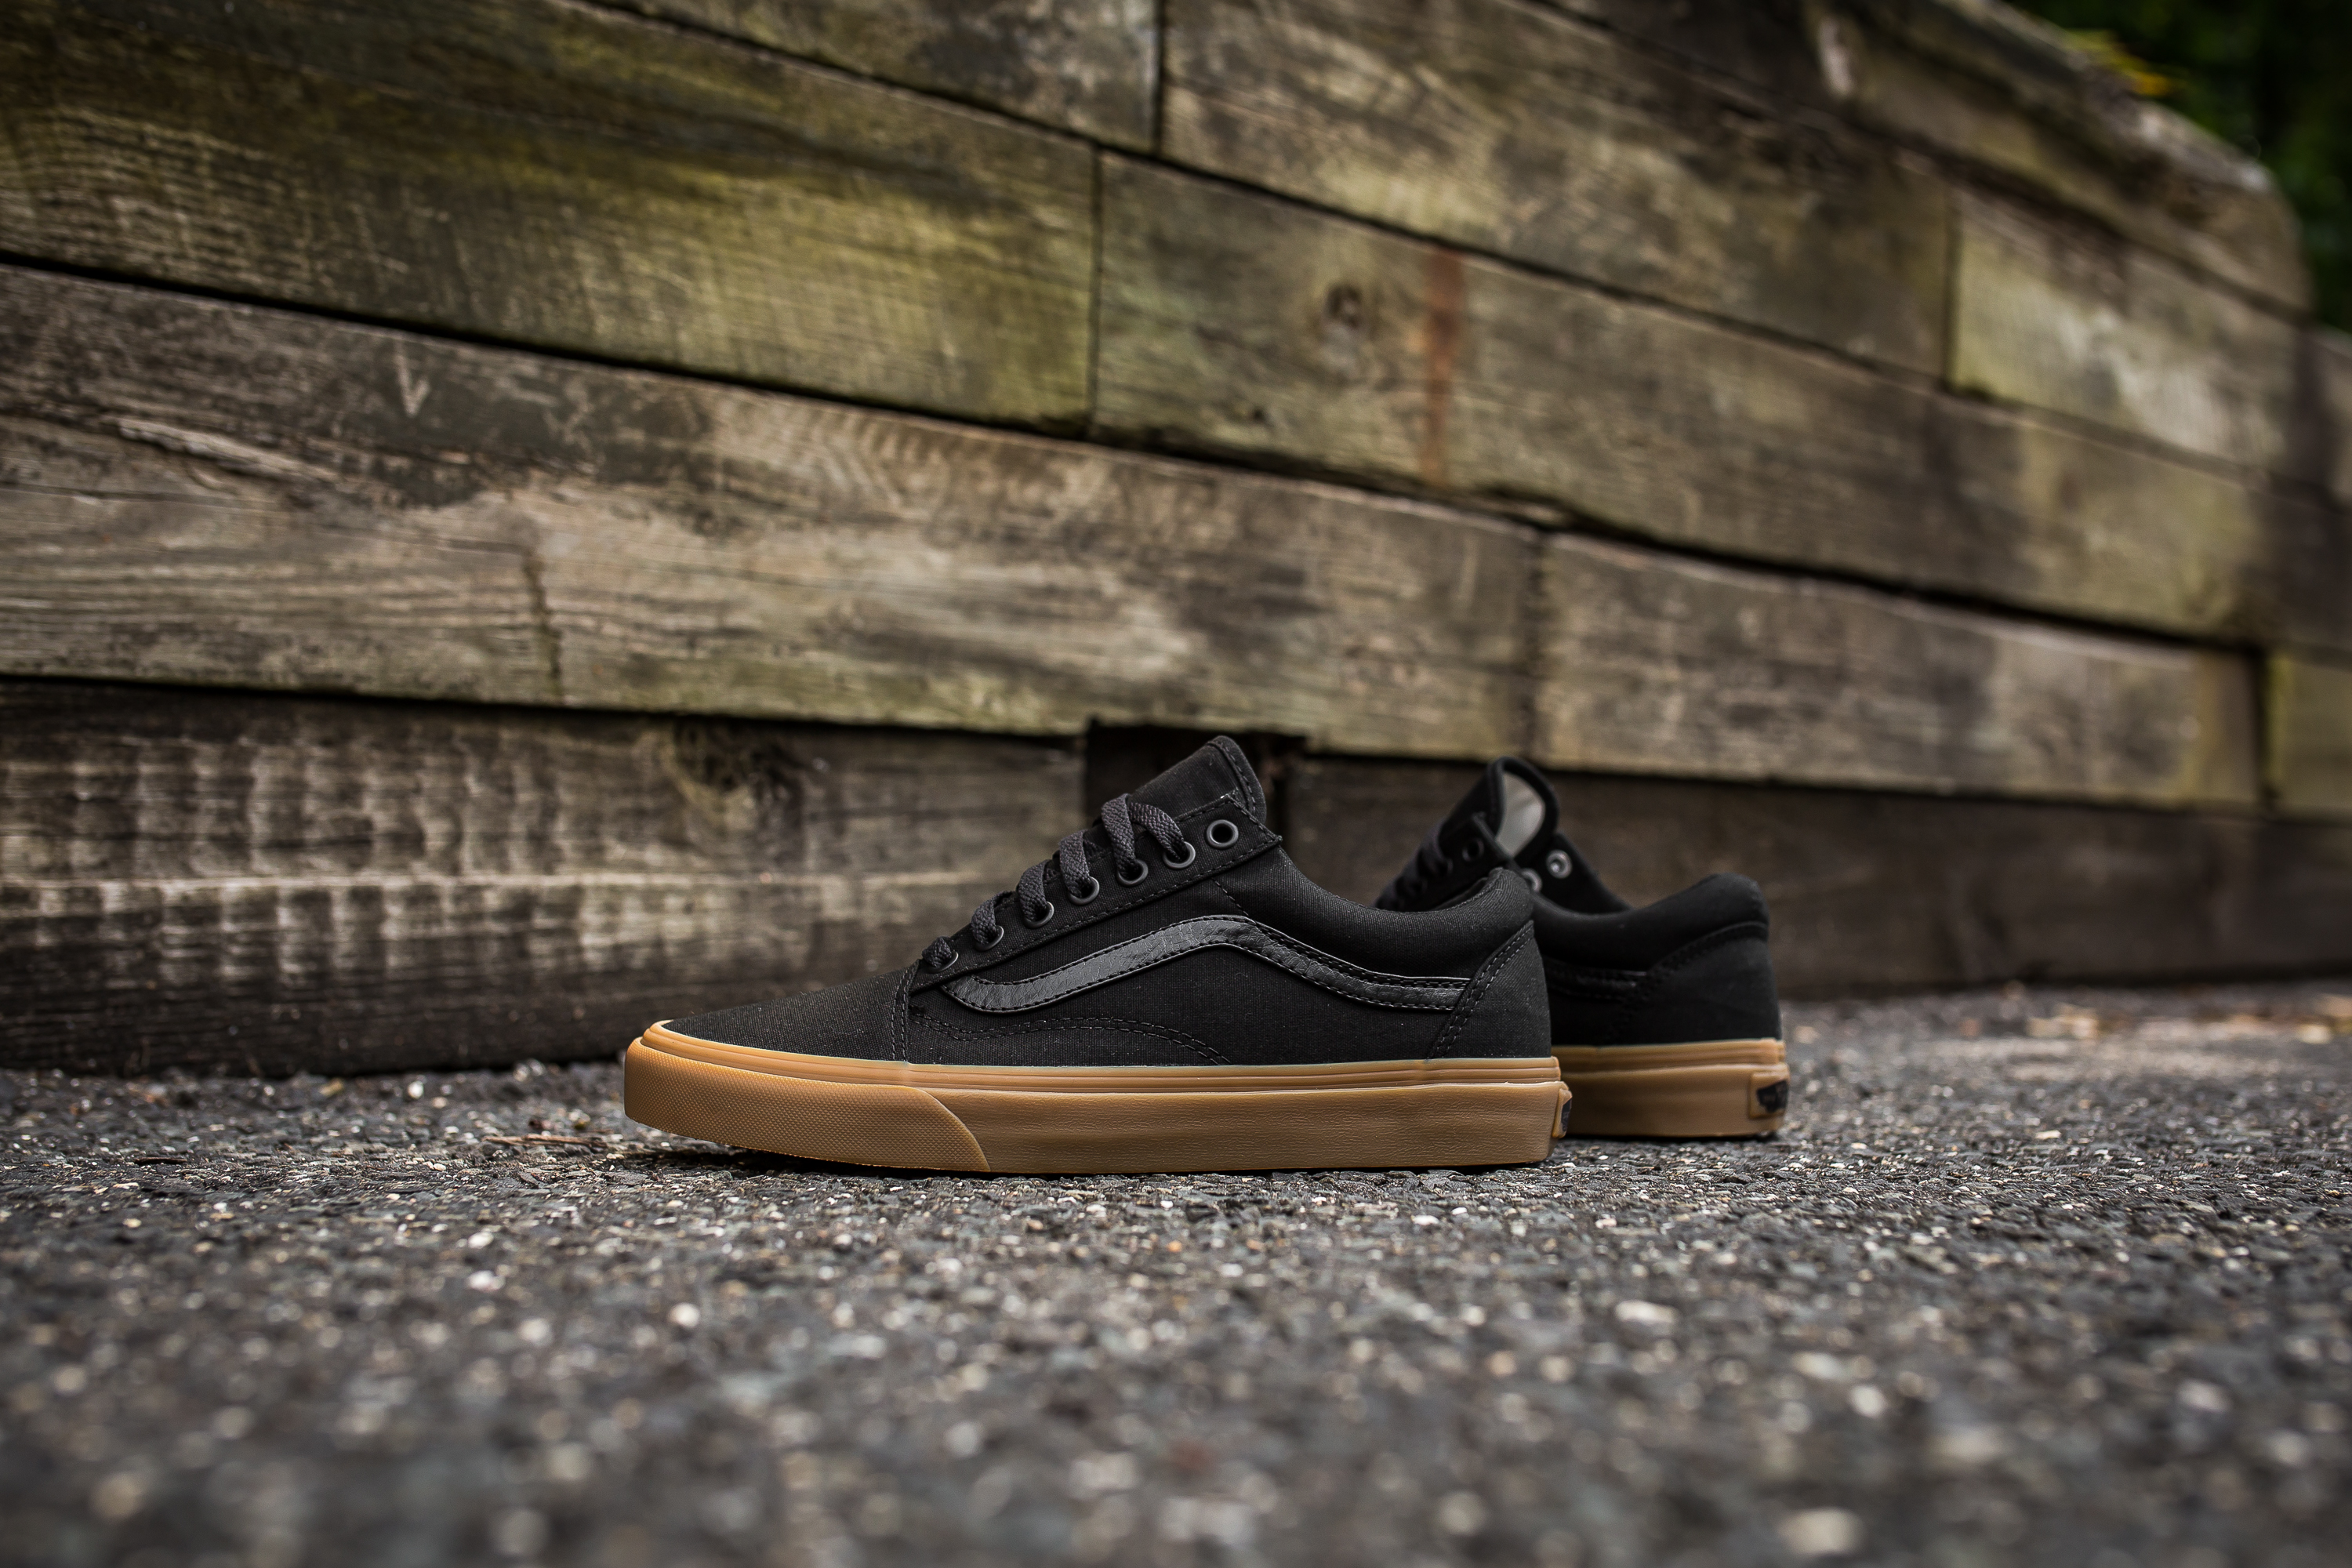 vans old skool light gum black